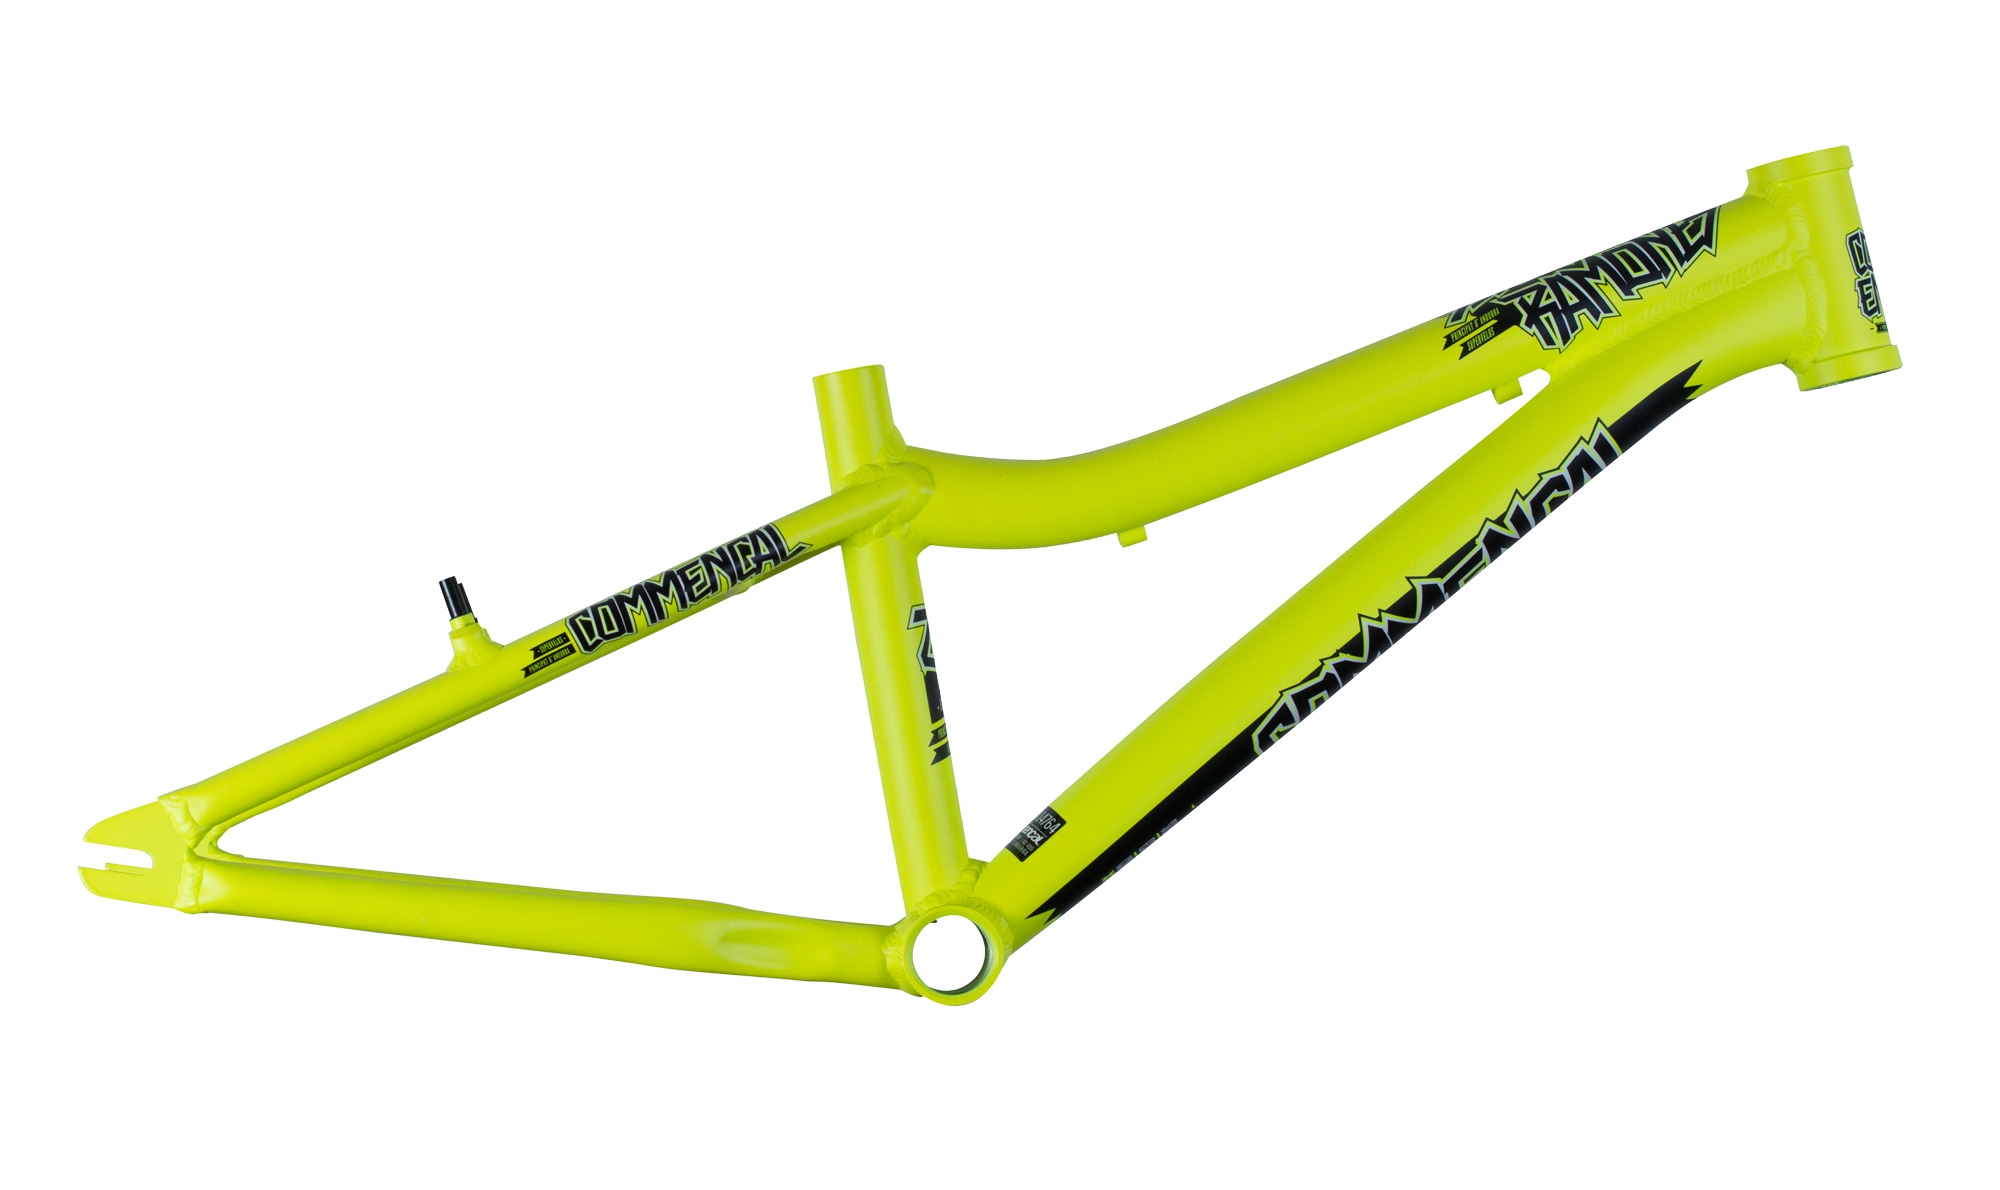 FRAME RAMONES 20 YELLOW W/DECAL